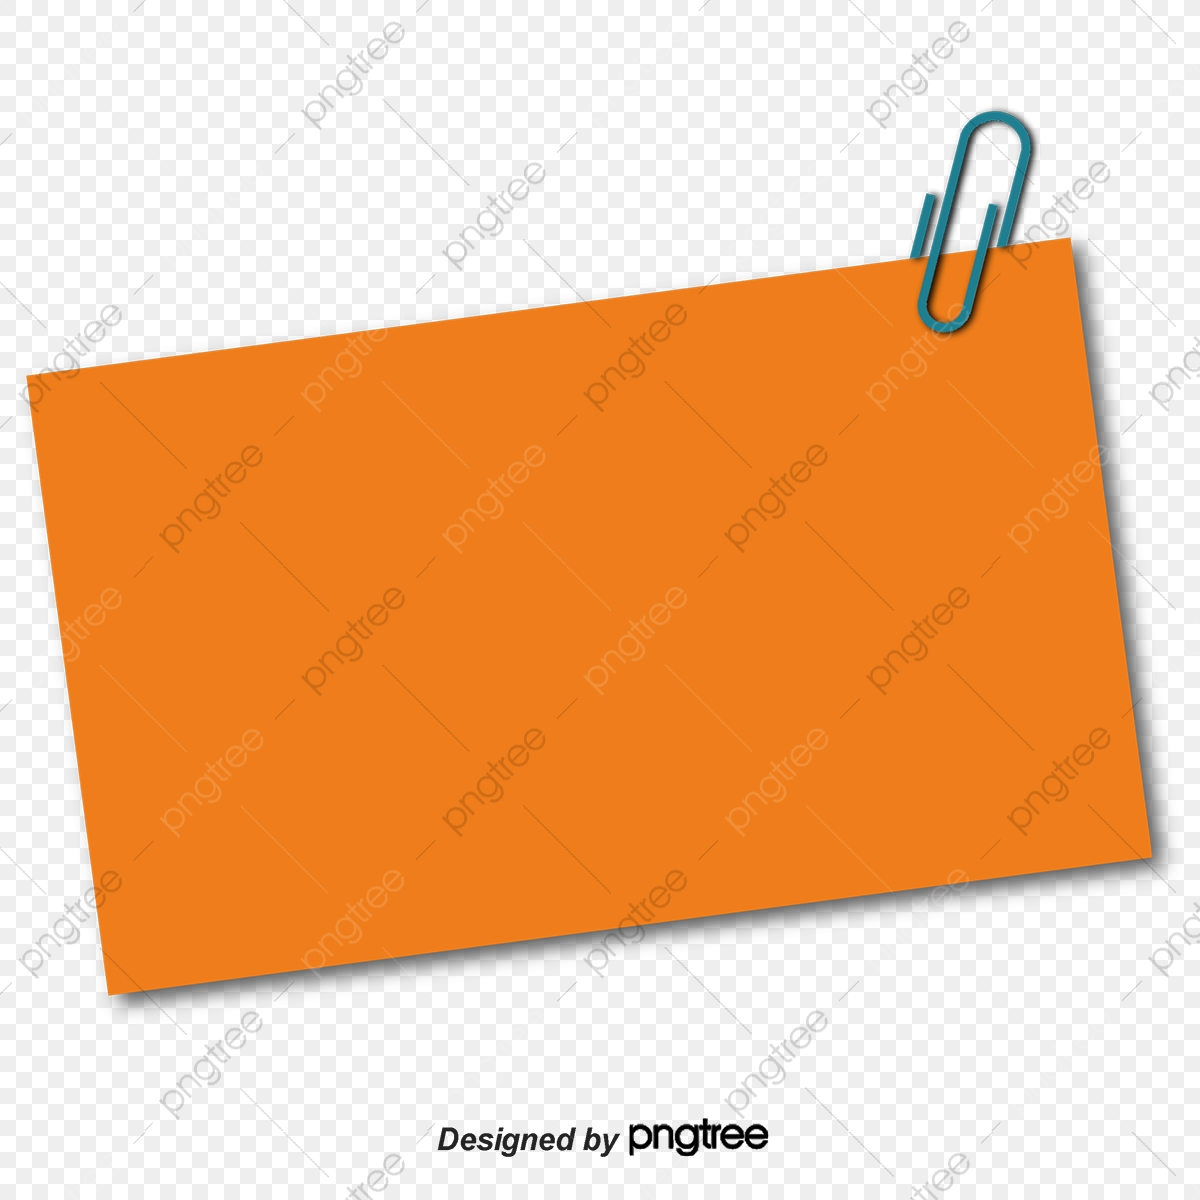 4 069 Paper Vector Images At Vectorified